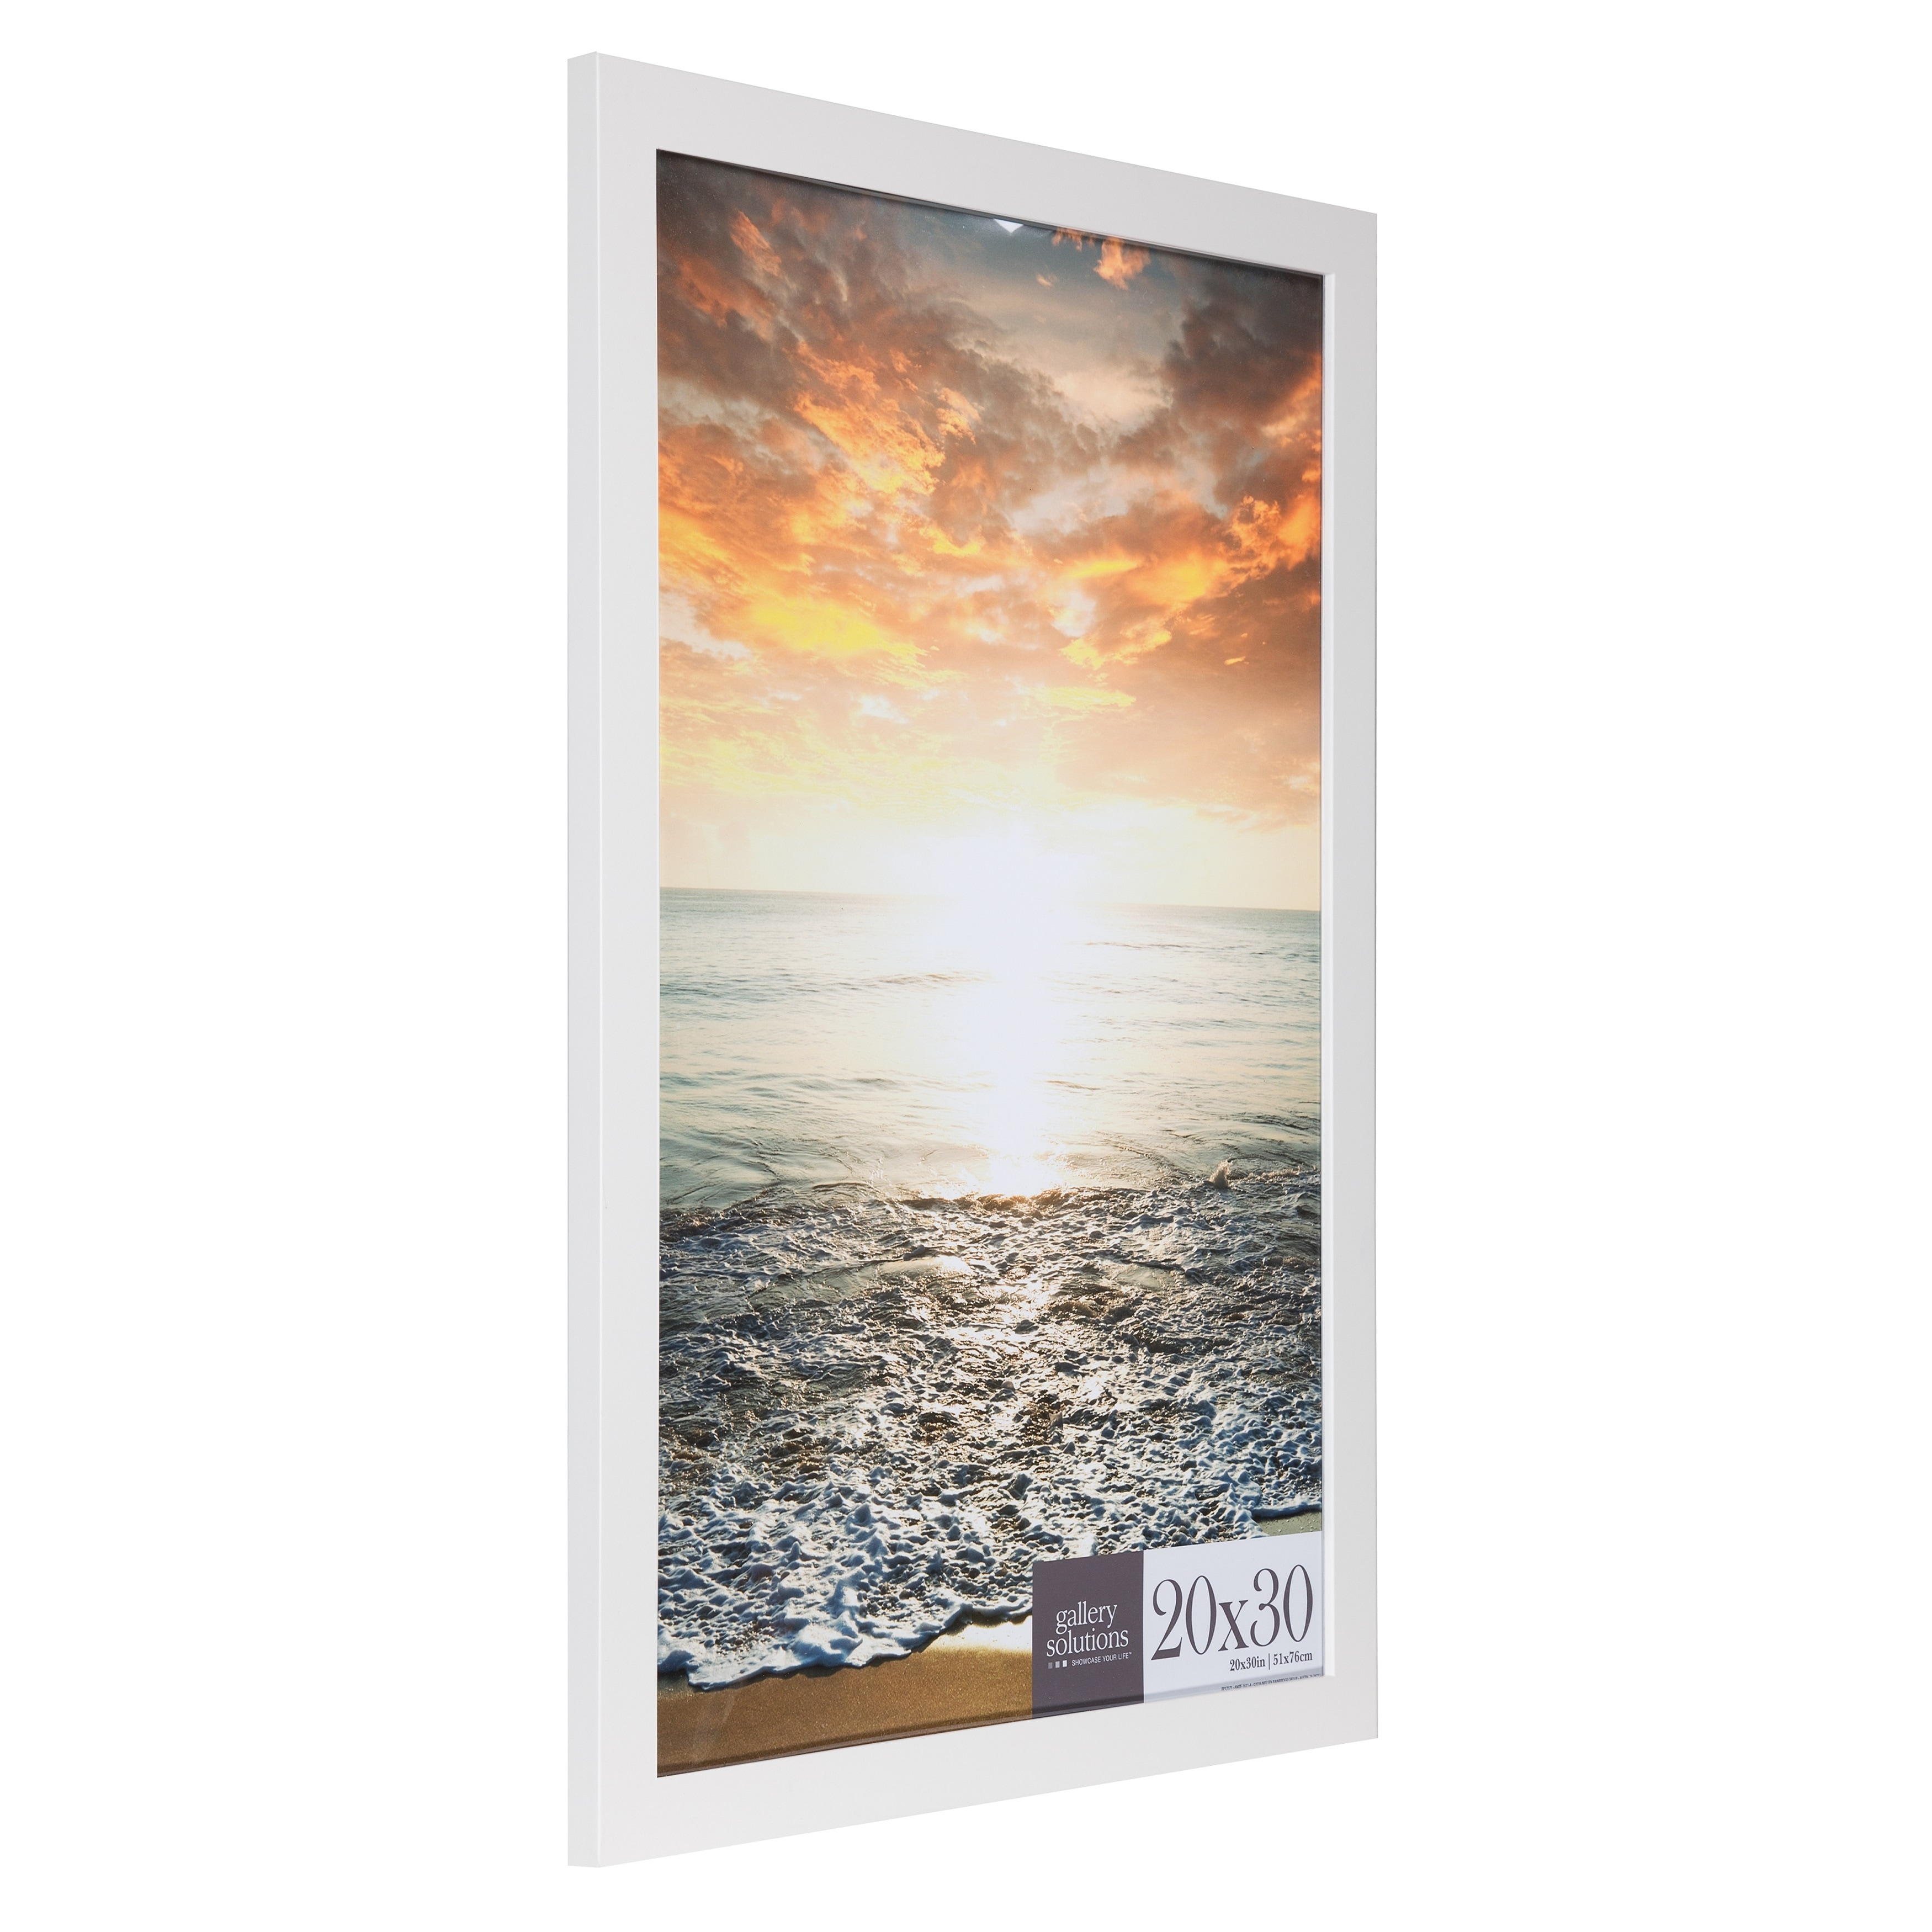 mats shipping today garden overstock flat free large white frame mat with home wall product